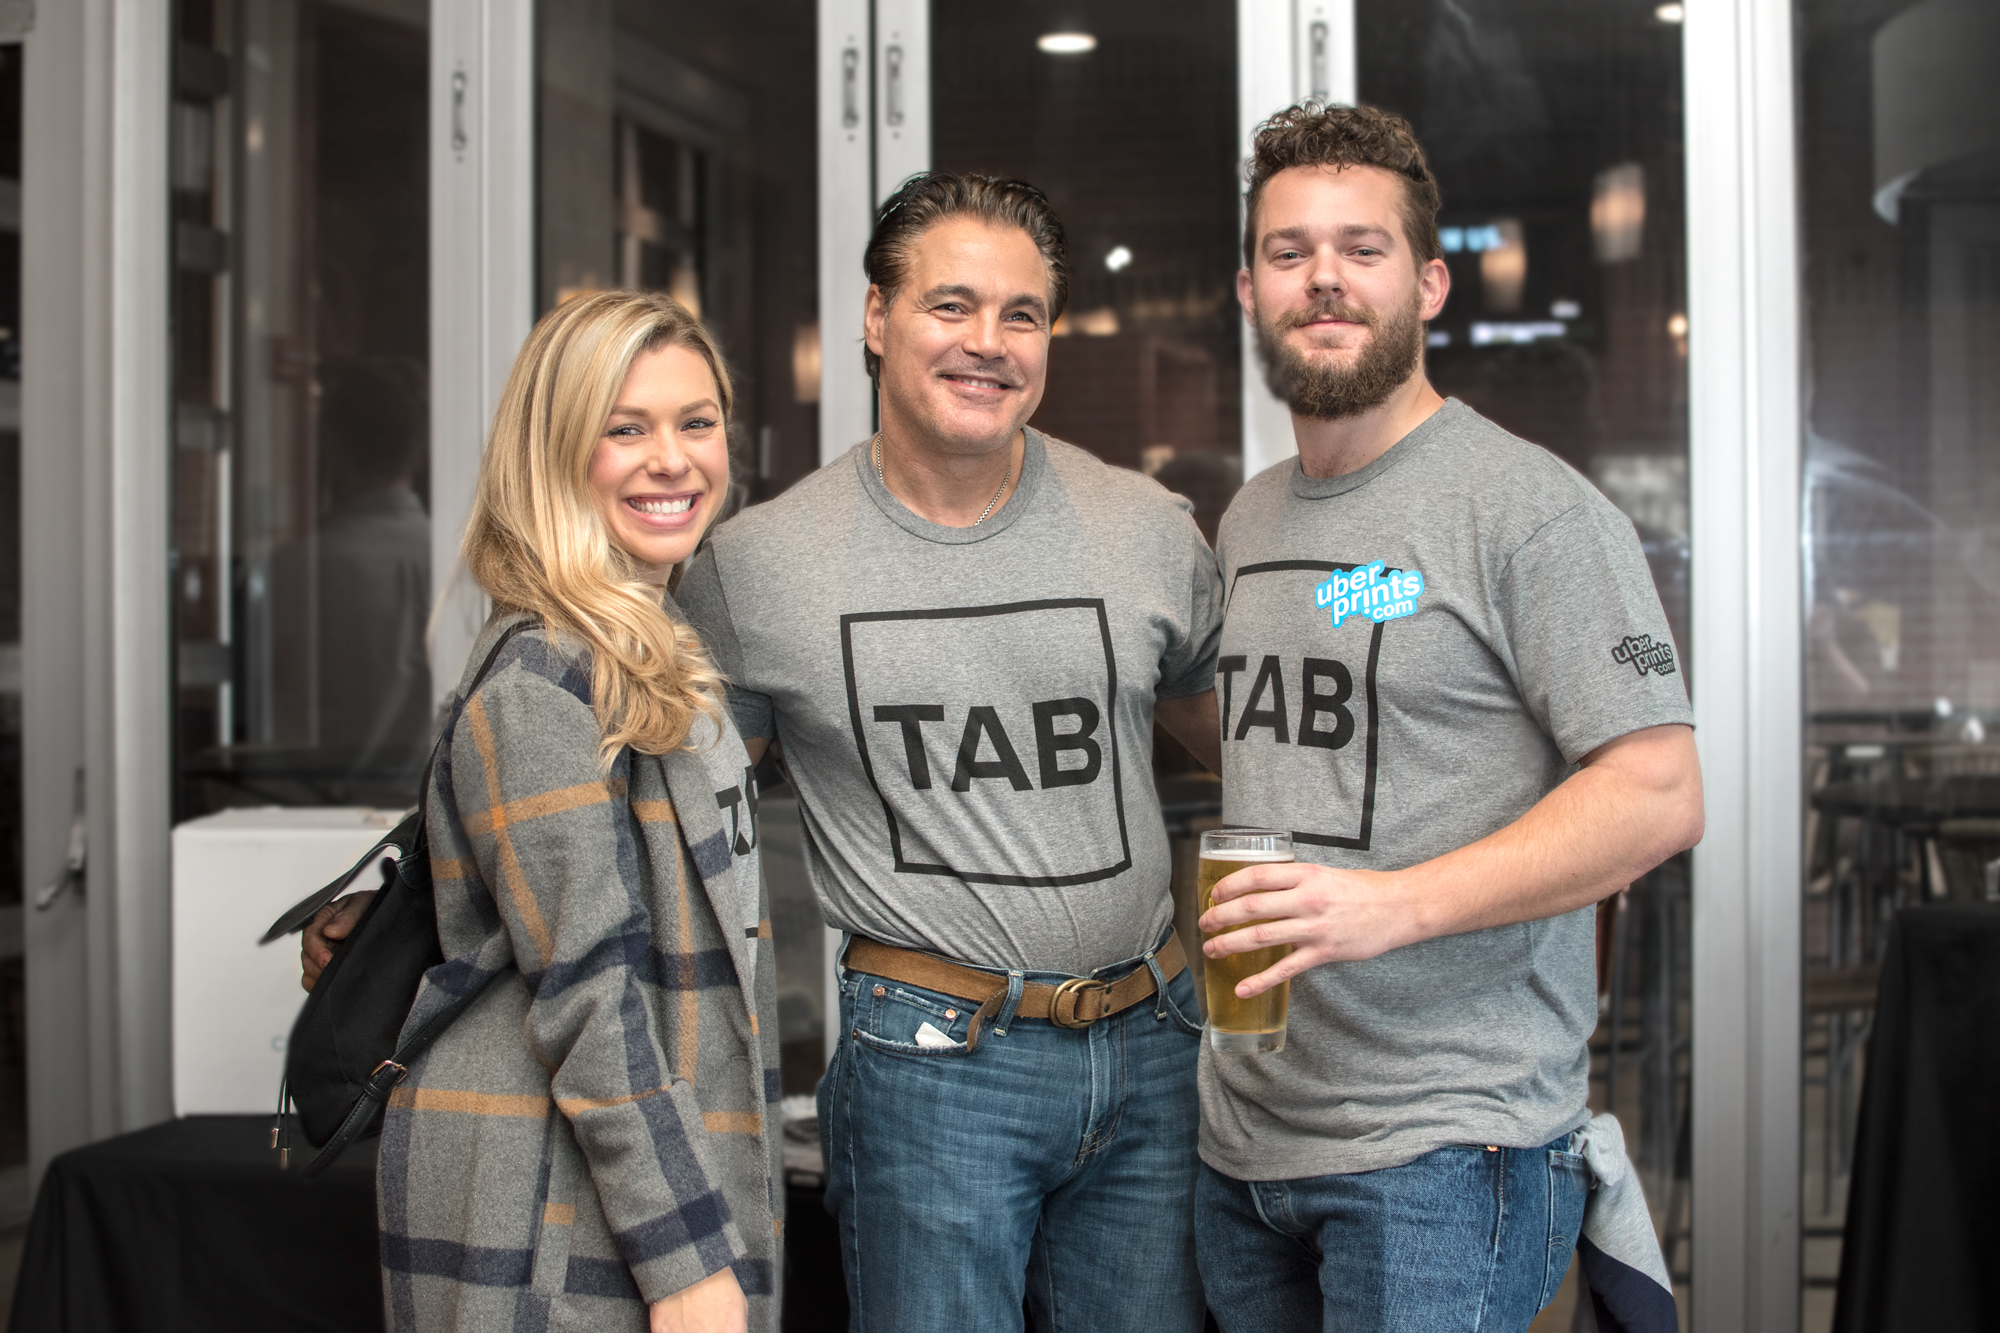 Event attendees wearing their custom printing TAB t-shirts.